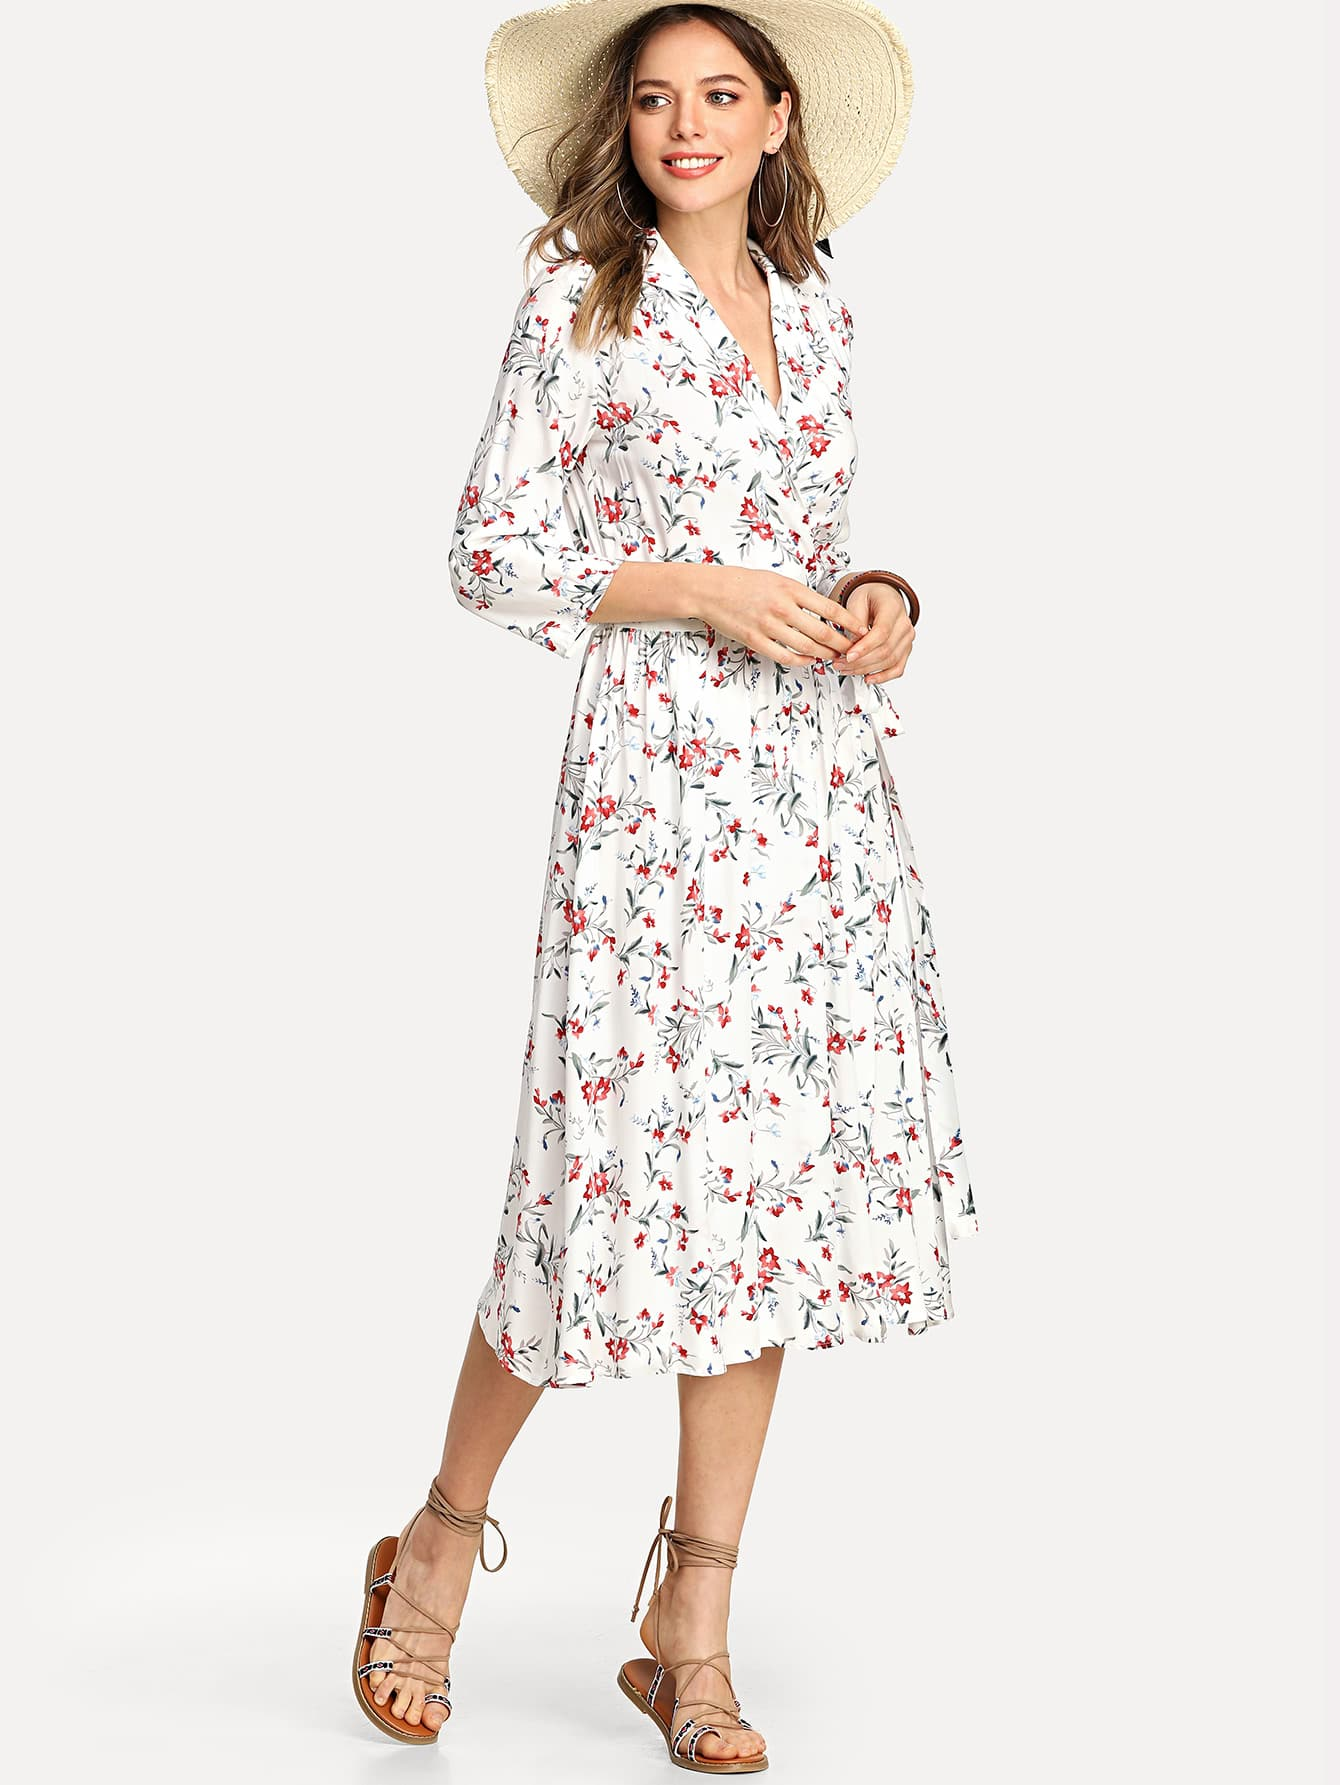 Notch Collar Floral Wrap Dress notch collar floral wrap dress